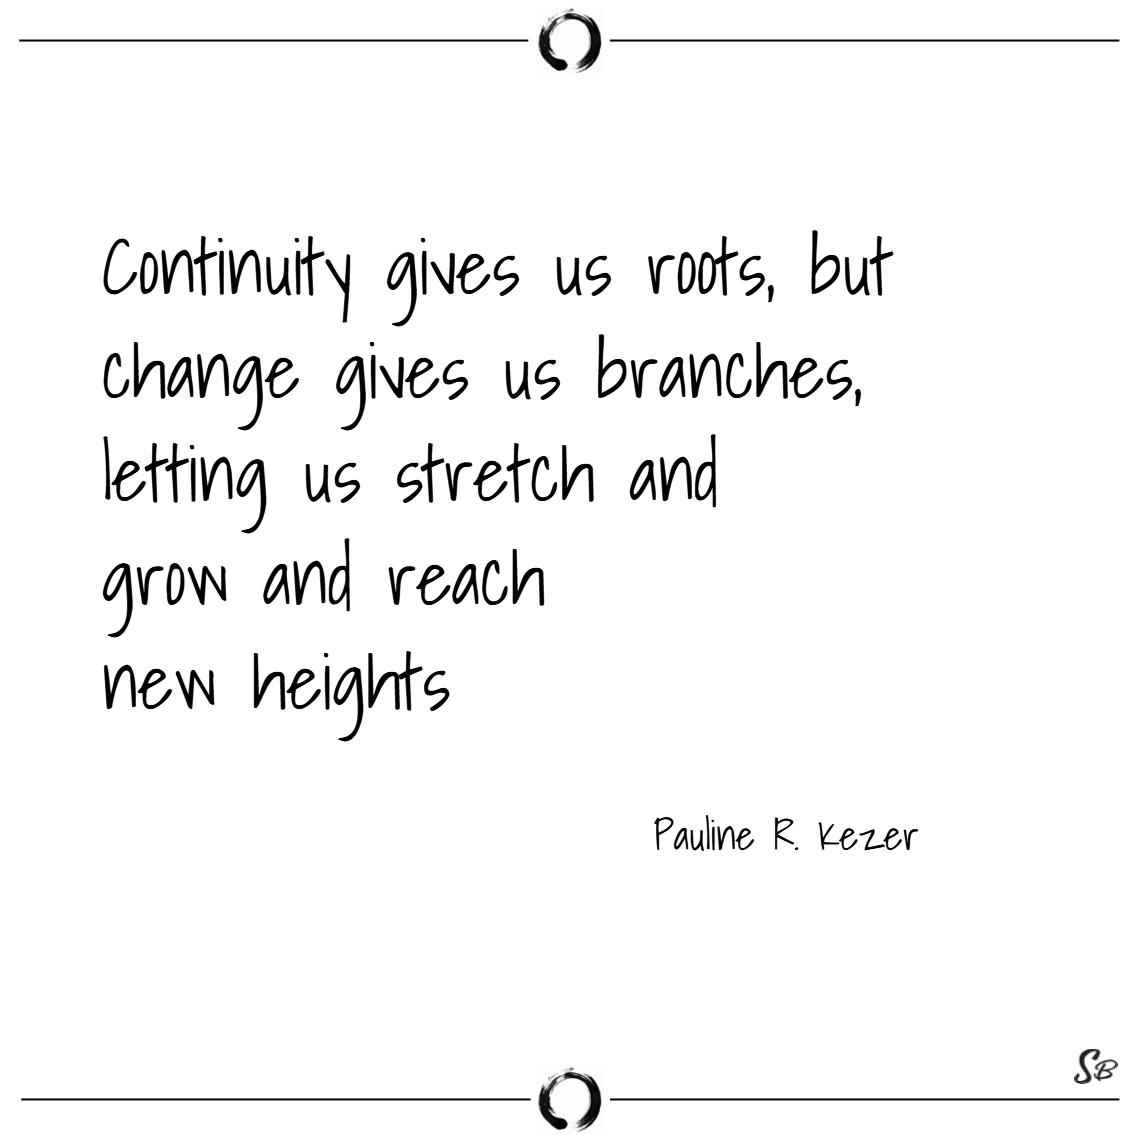 Continuity gives us roots, but change gives us branches, letting us stretch and grow and reach new heights. – pauline r. kezer